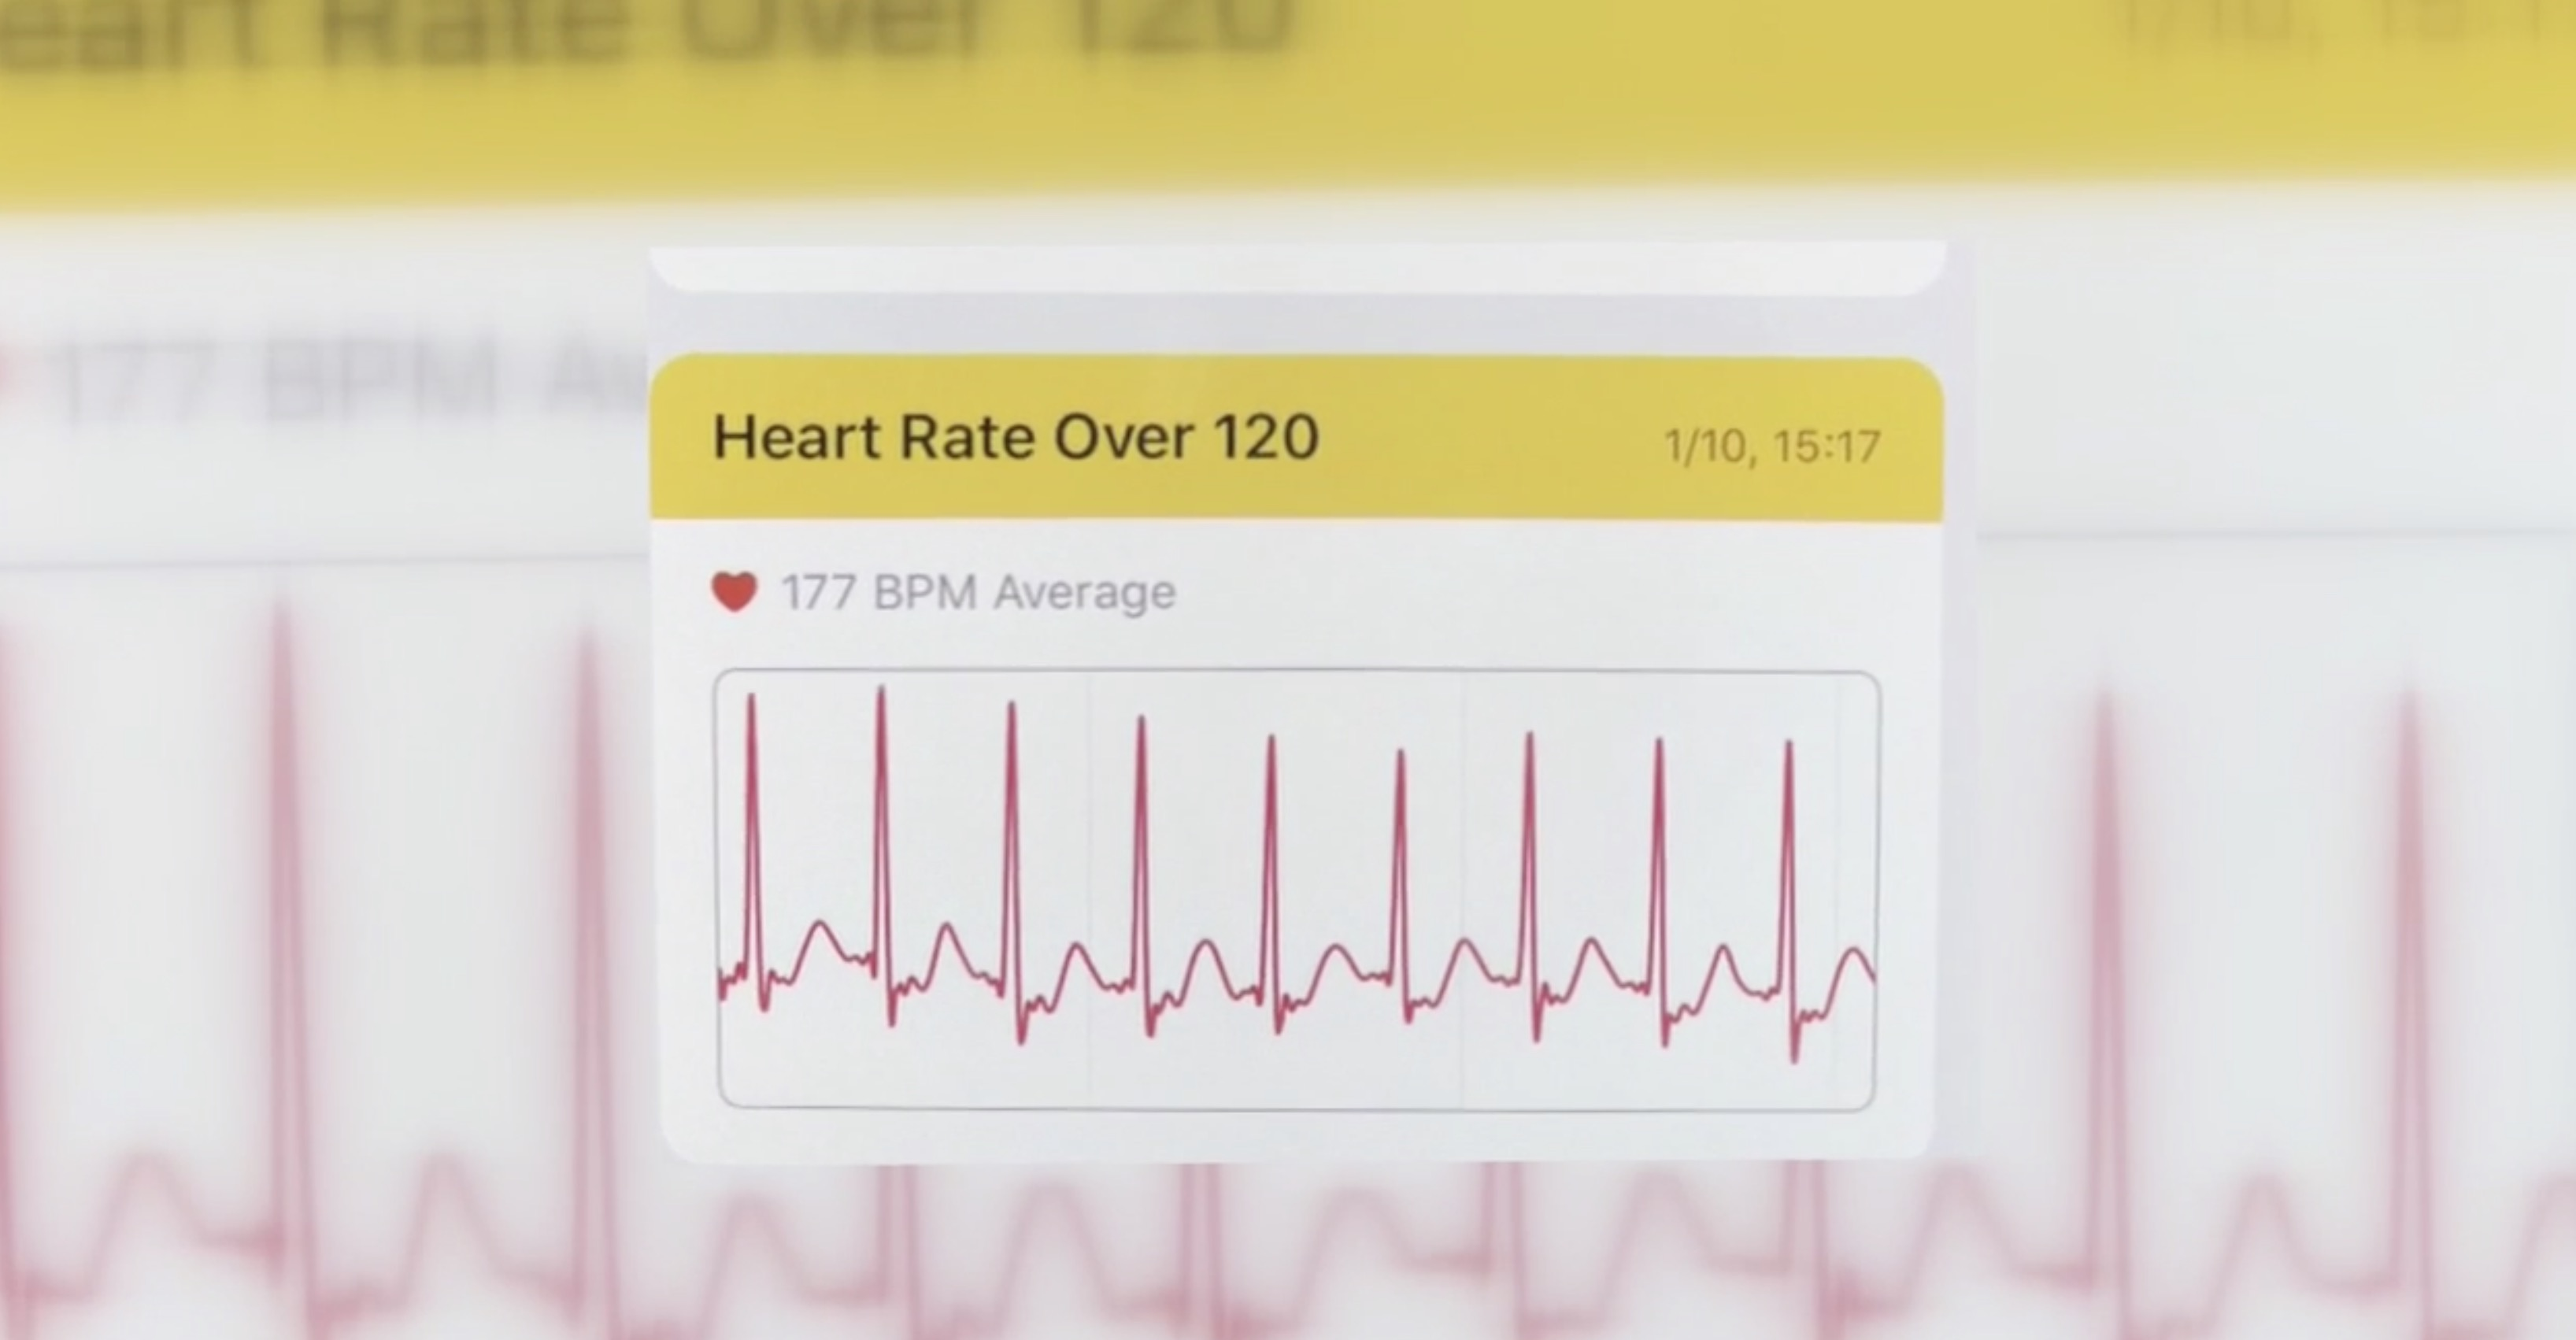 Apple Watch heart condition diagnosis high heart rate